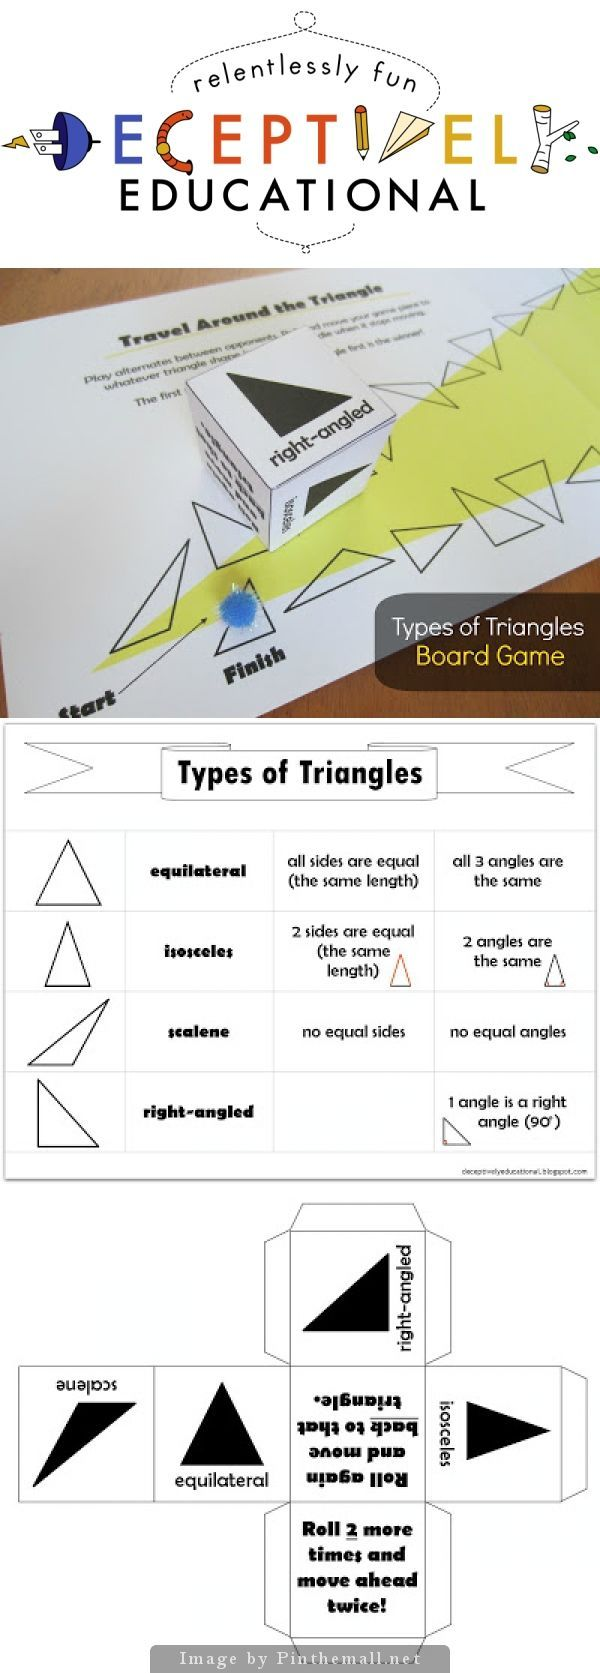 Types Of Triangles Board Game Math Lessons Education Math Teaching Math